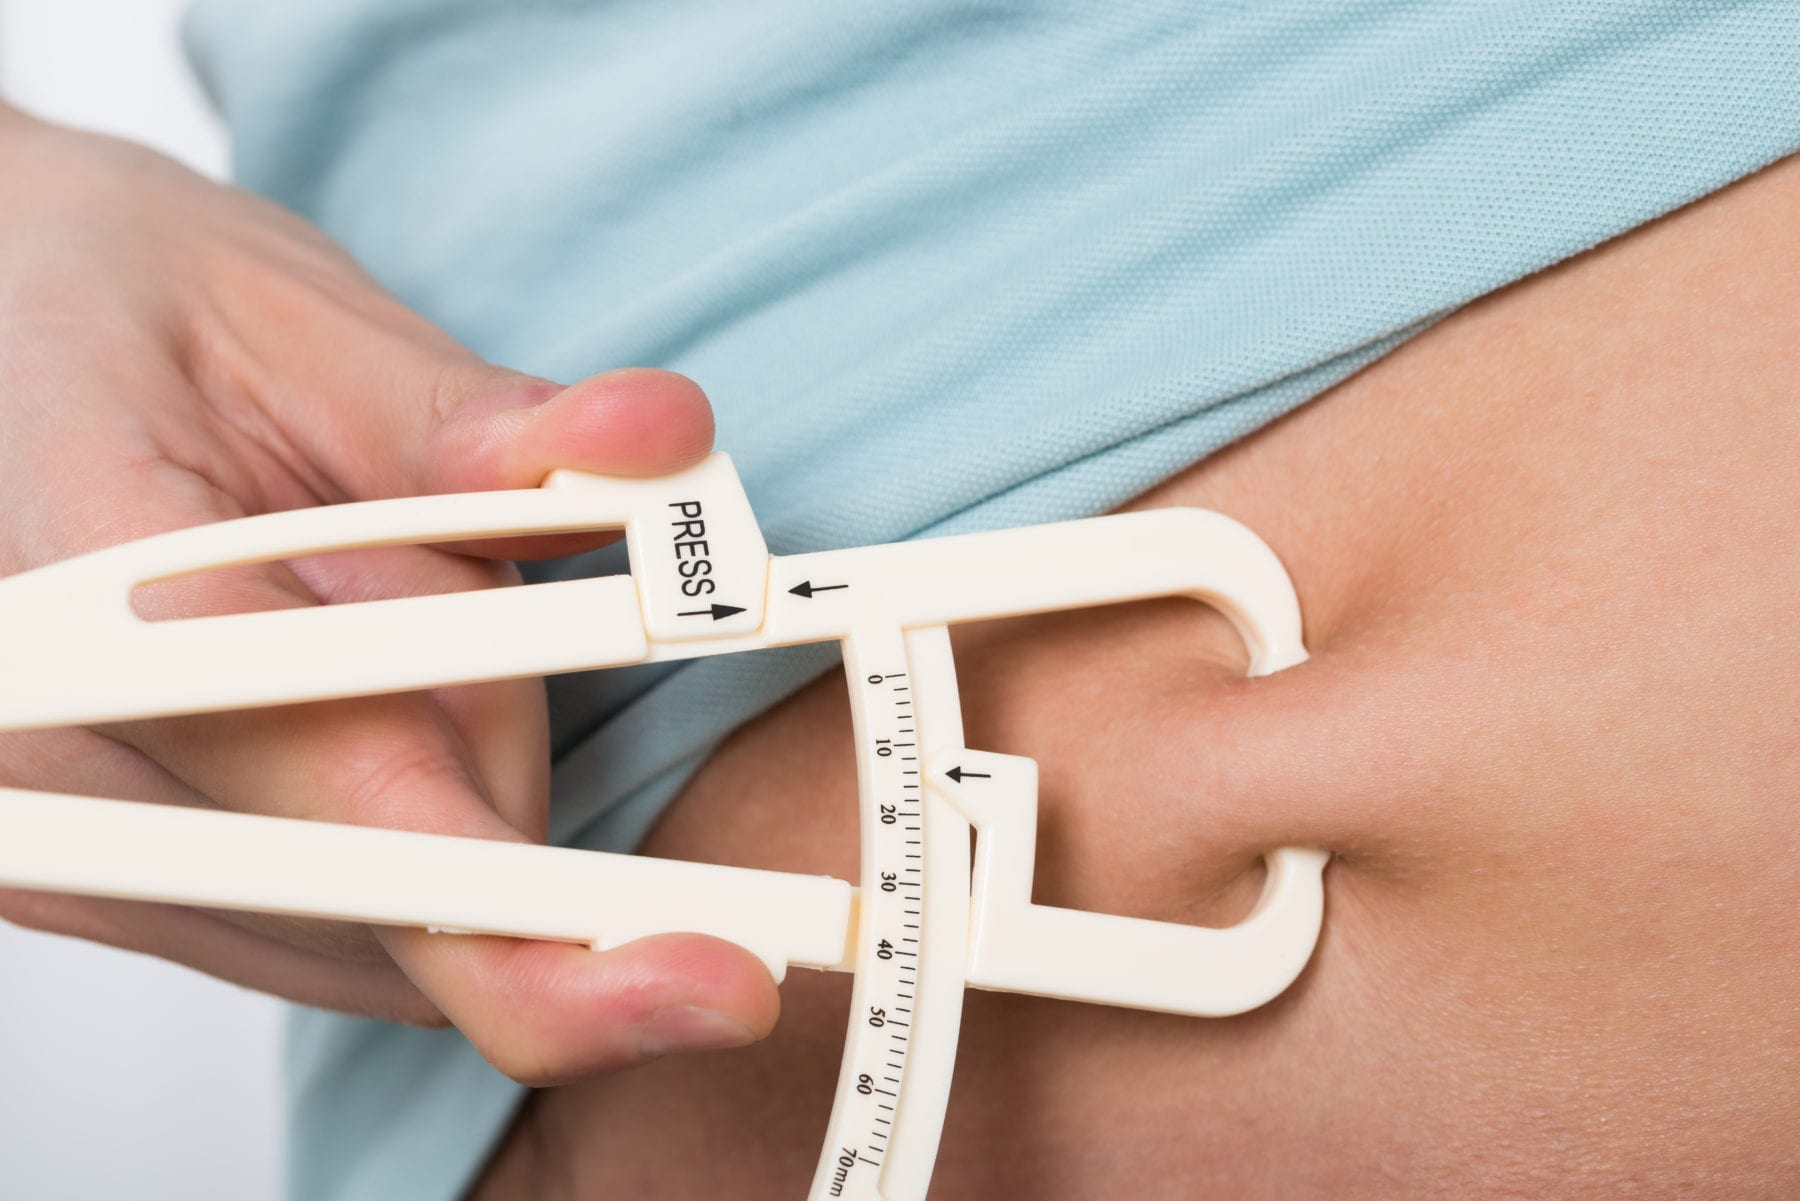 Bariatric, Best Weight Loss, Gastric Bypass Surgery in Thailand/Malaysia